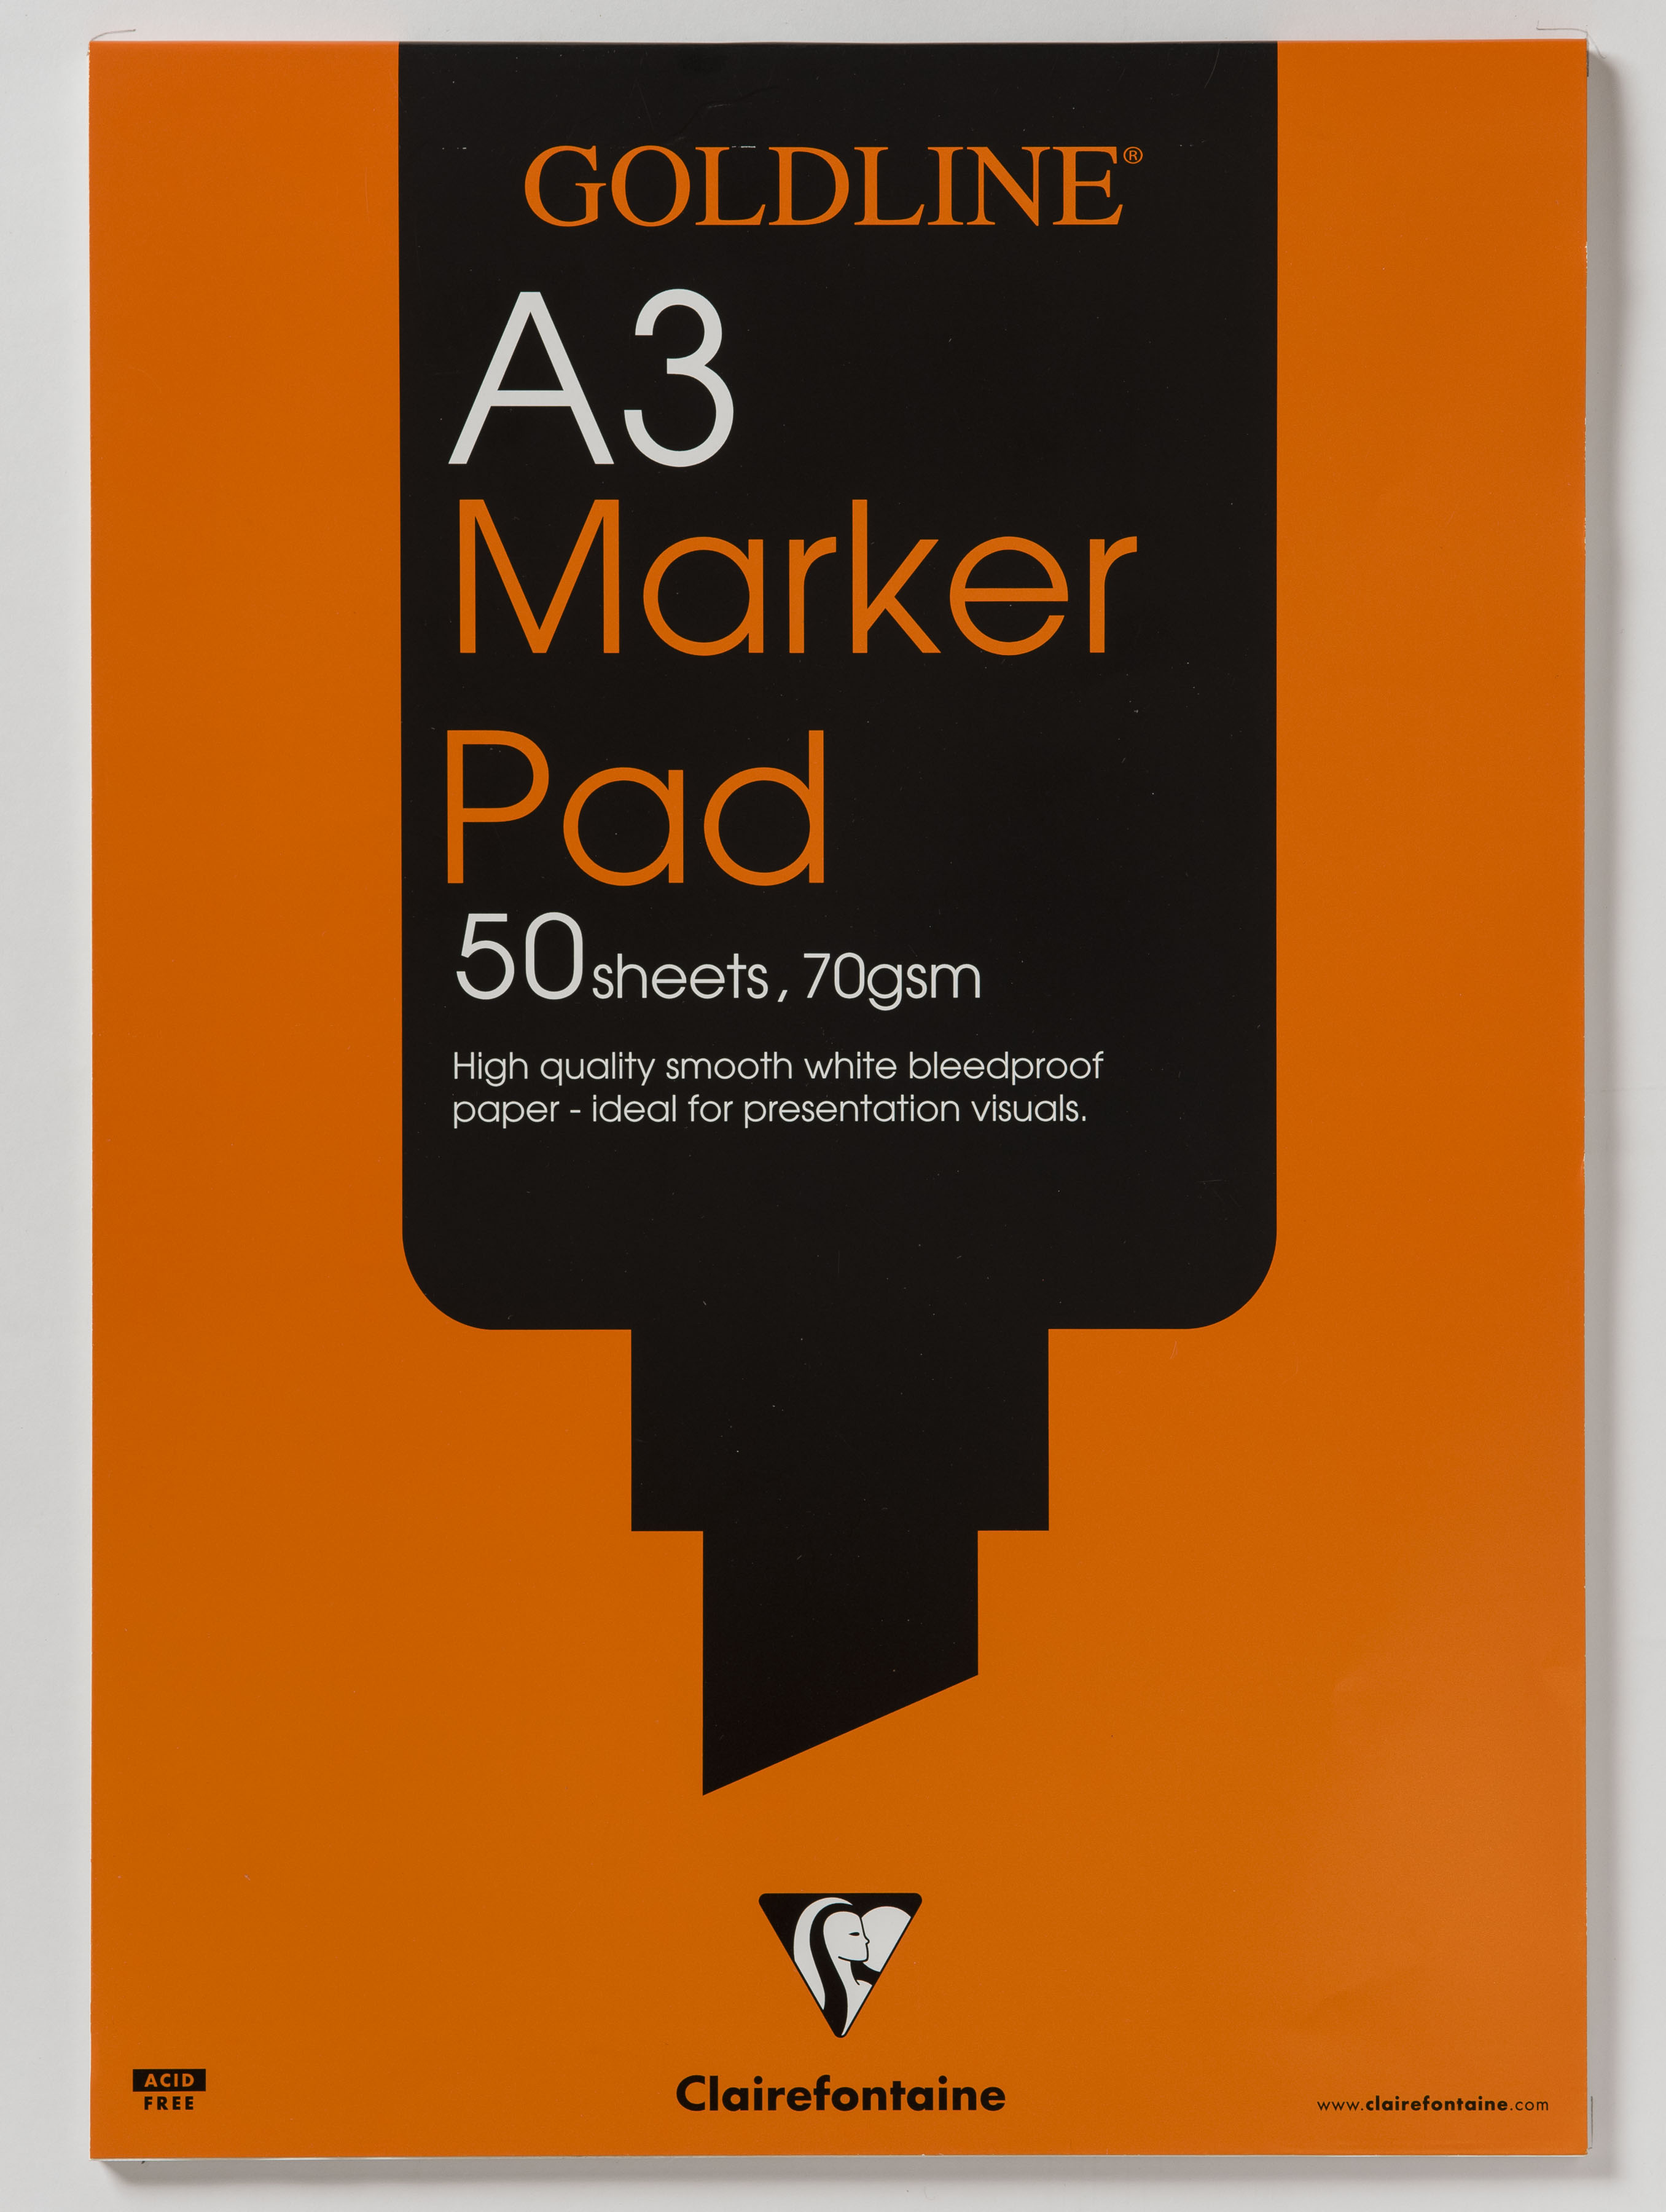 GDline BleedproofMarker Pad A3